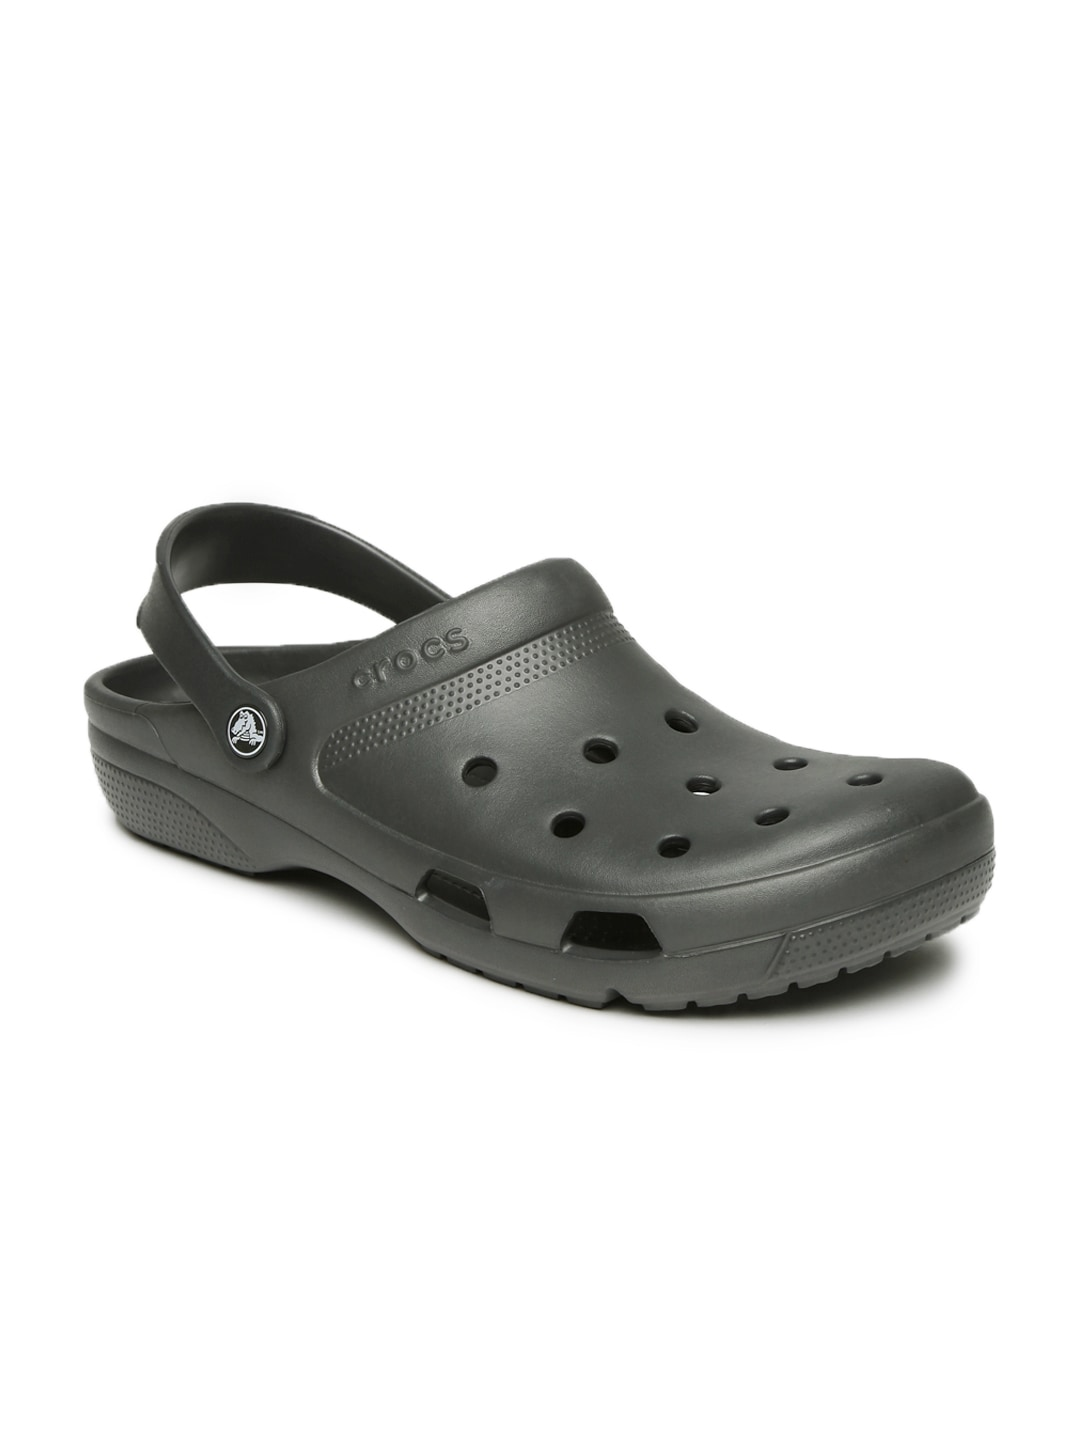 aee38106e Crocs Shoes Online - Buy Crocs Flip Flops   Sandals Online in India - Myntra